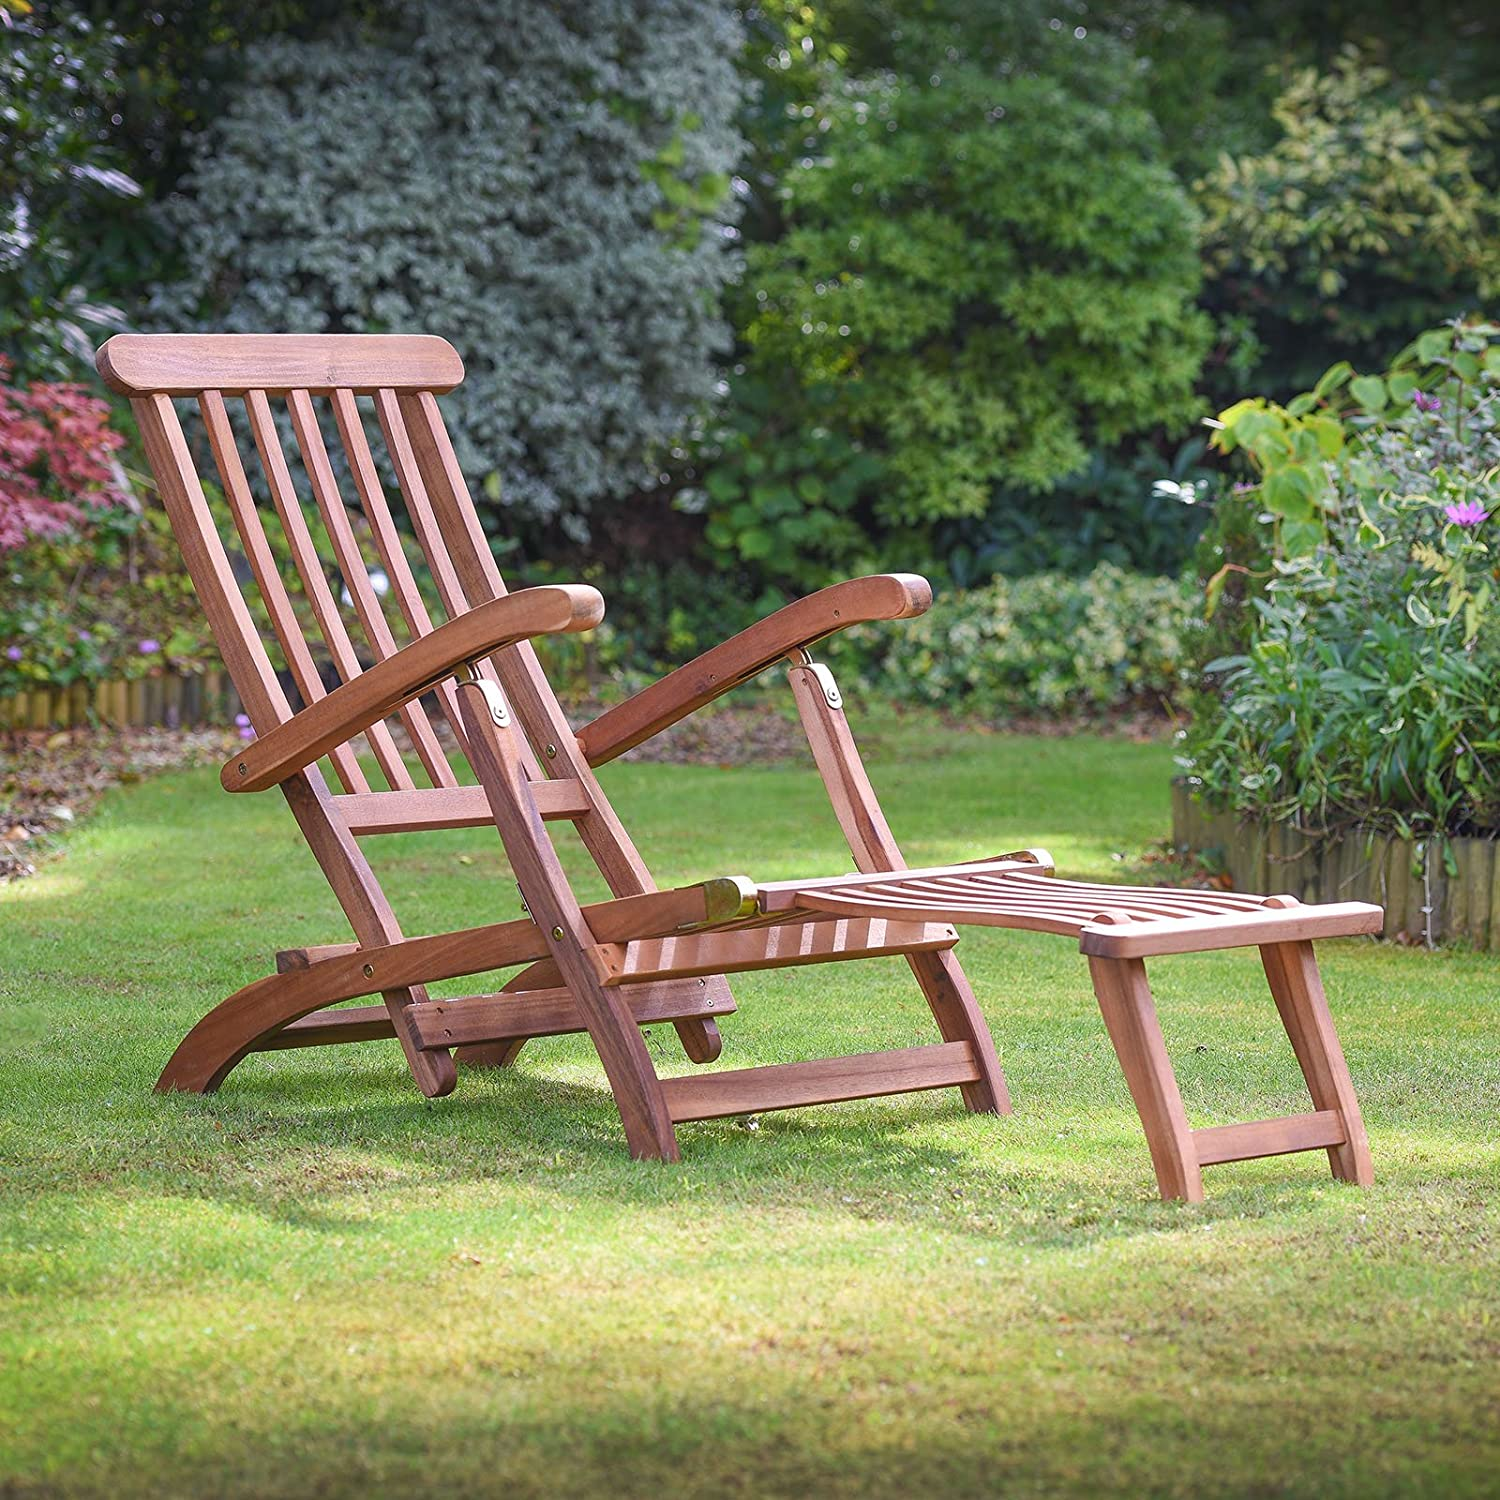 Plant Theatre Reclining Hardwood Steamer Chair – Fully Assembled